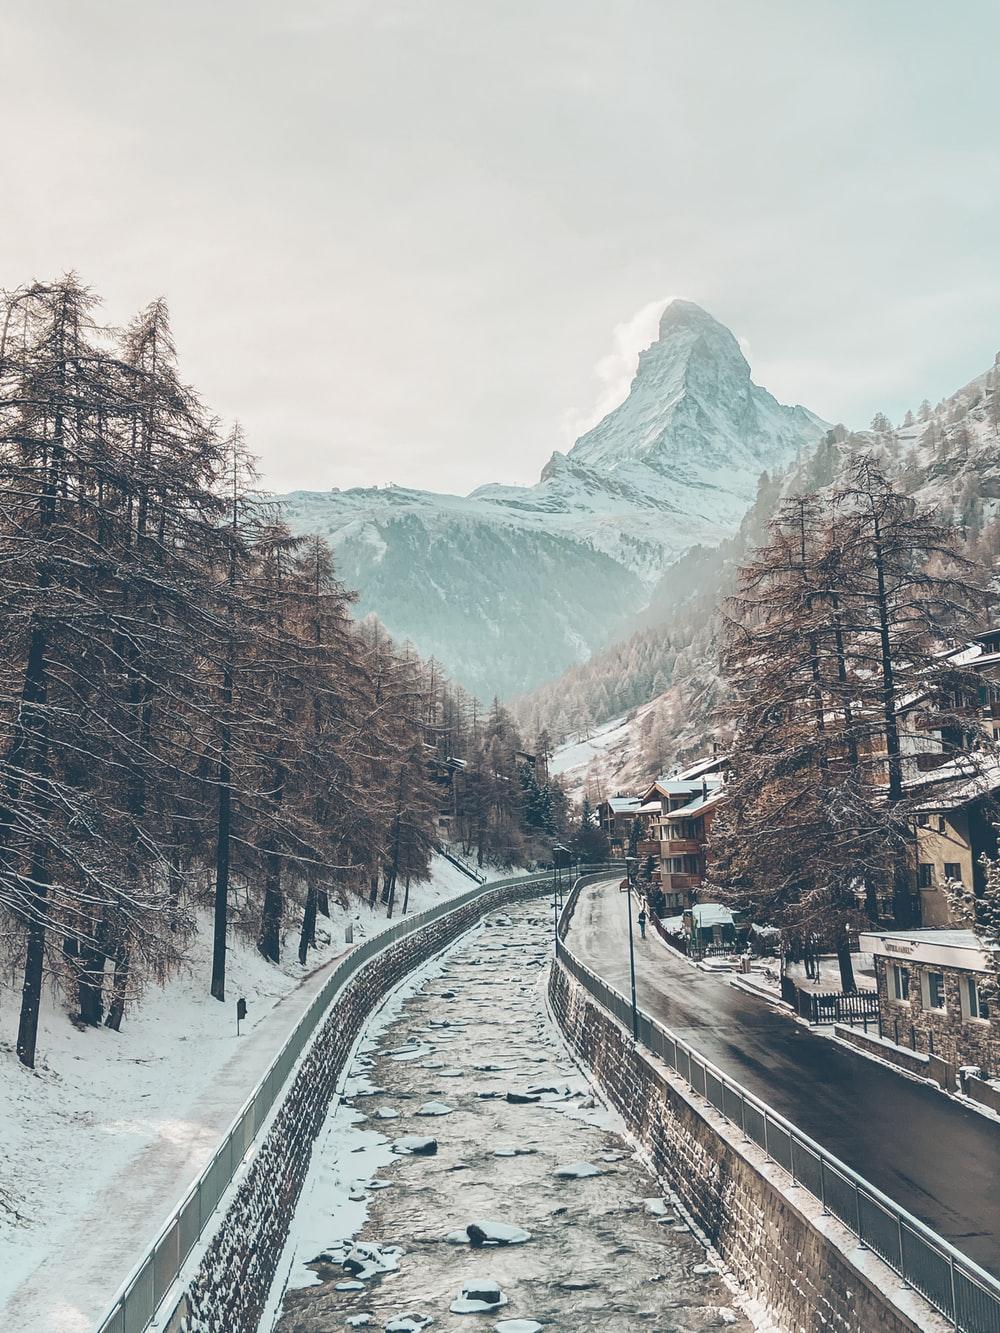 black train rail near trees and snow covered mountain during daytime